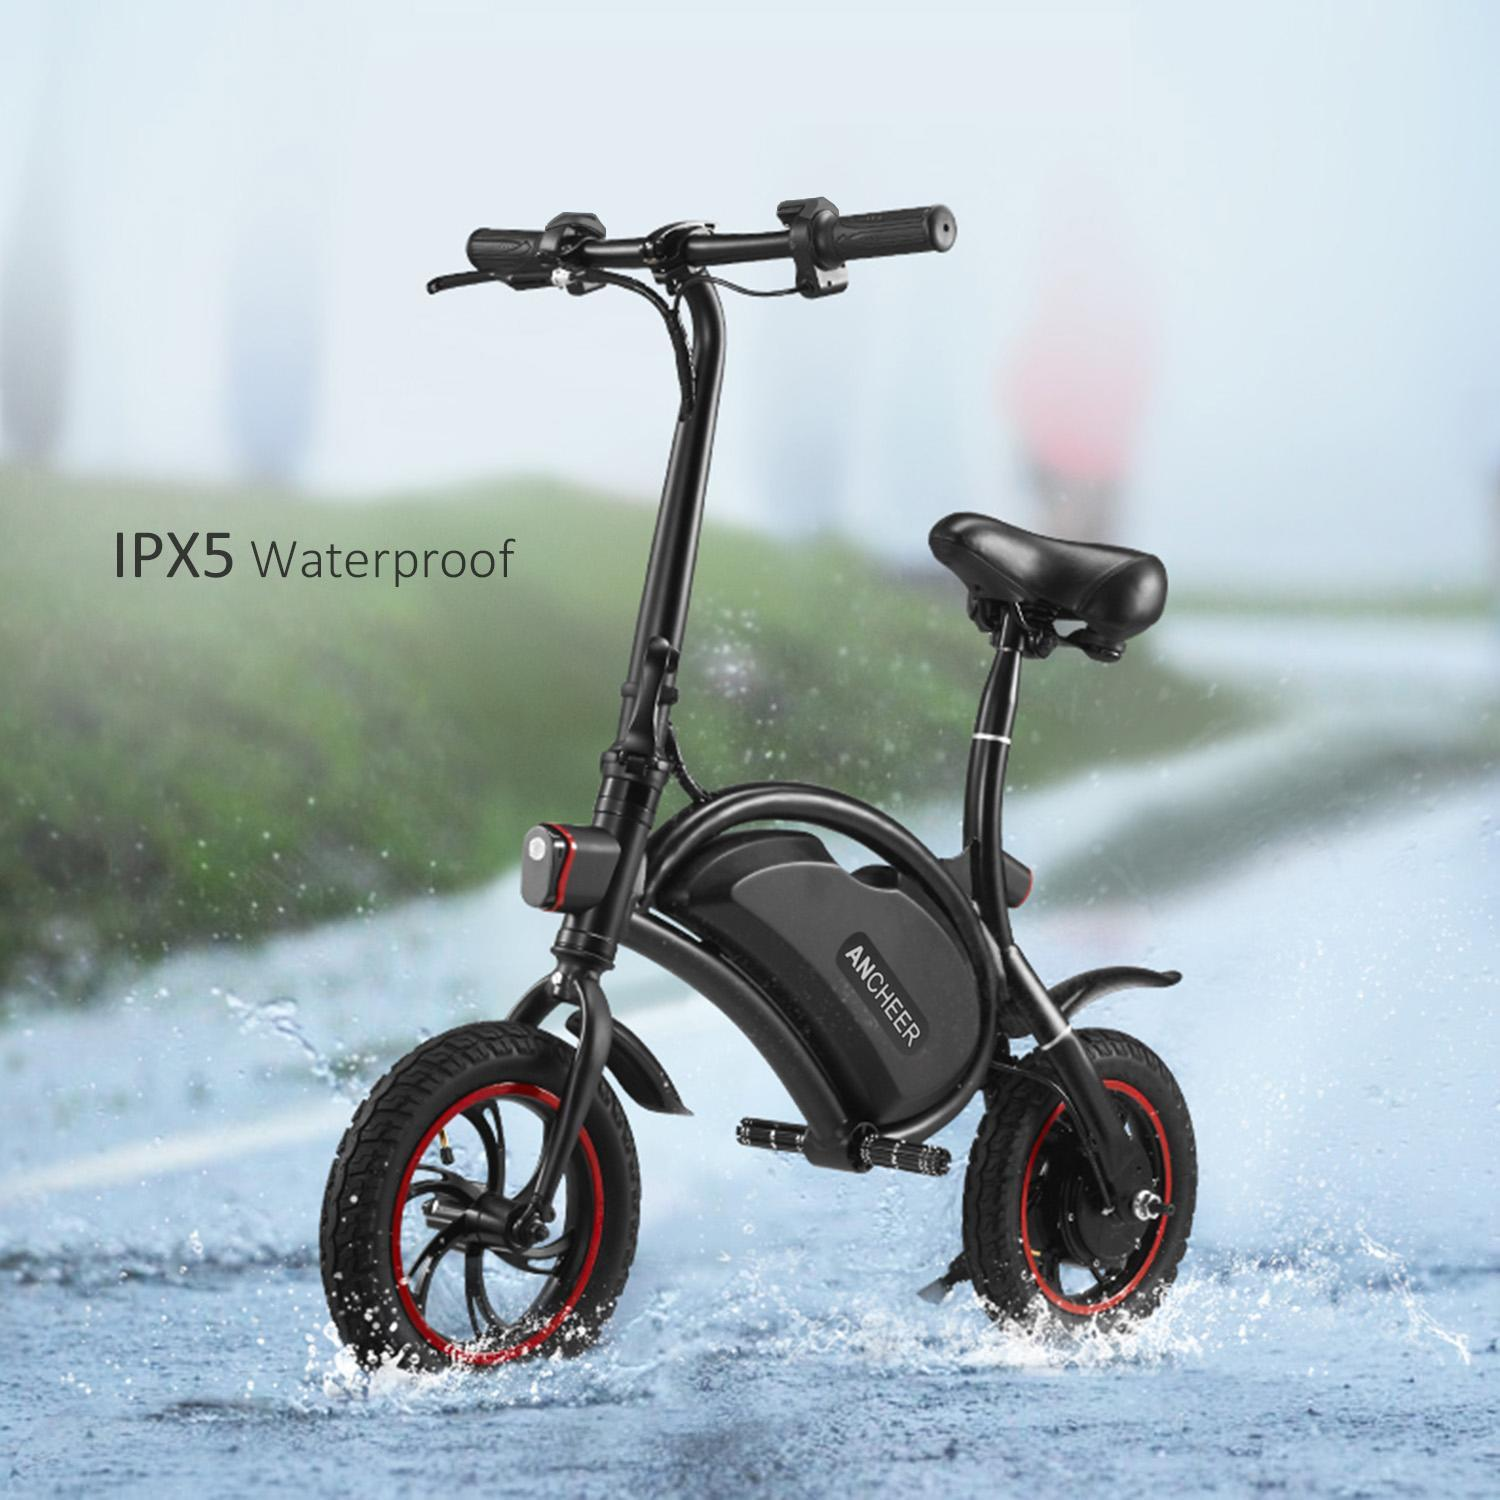 Lowest Price Ever! ANCHEER 12''APP Control Folding Electric Bike Bluetooth System 350W 36V 6AH Lithium Battery Smart Electric Mountain Bicycle With Automatic Headlight